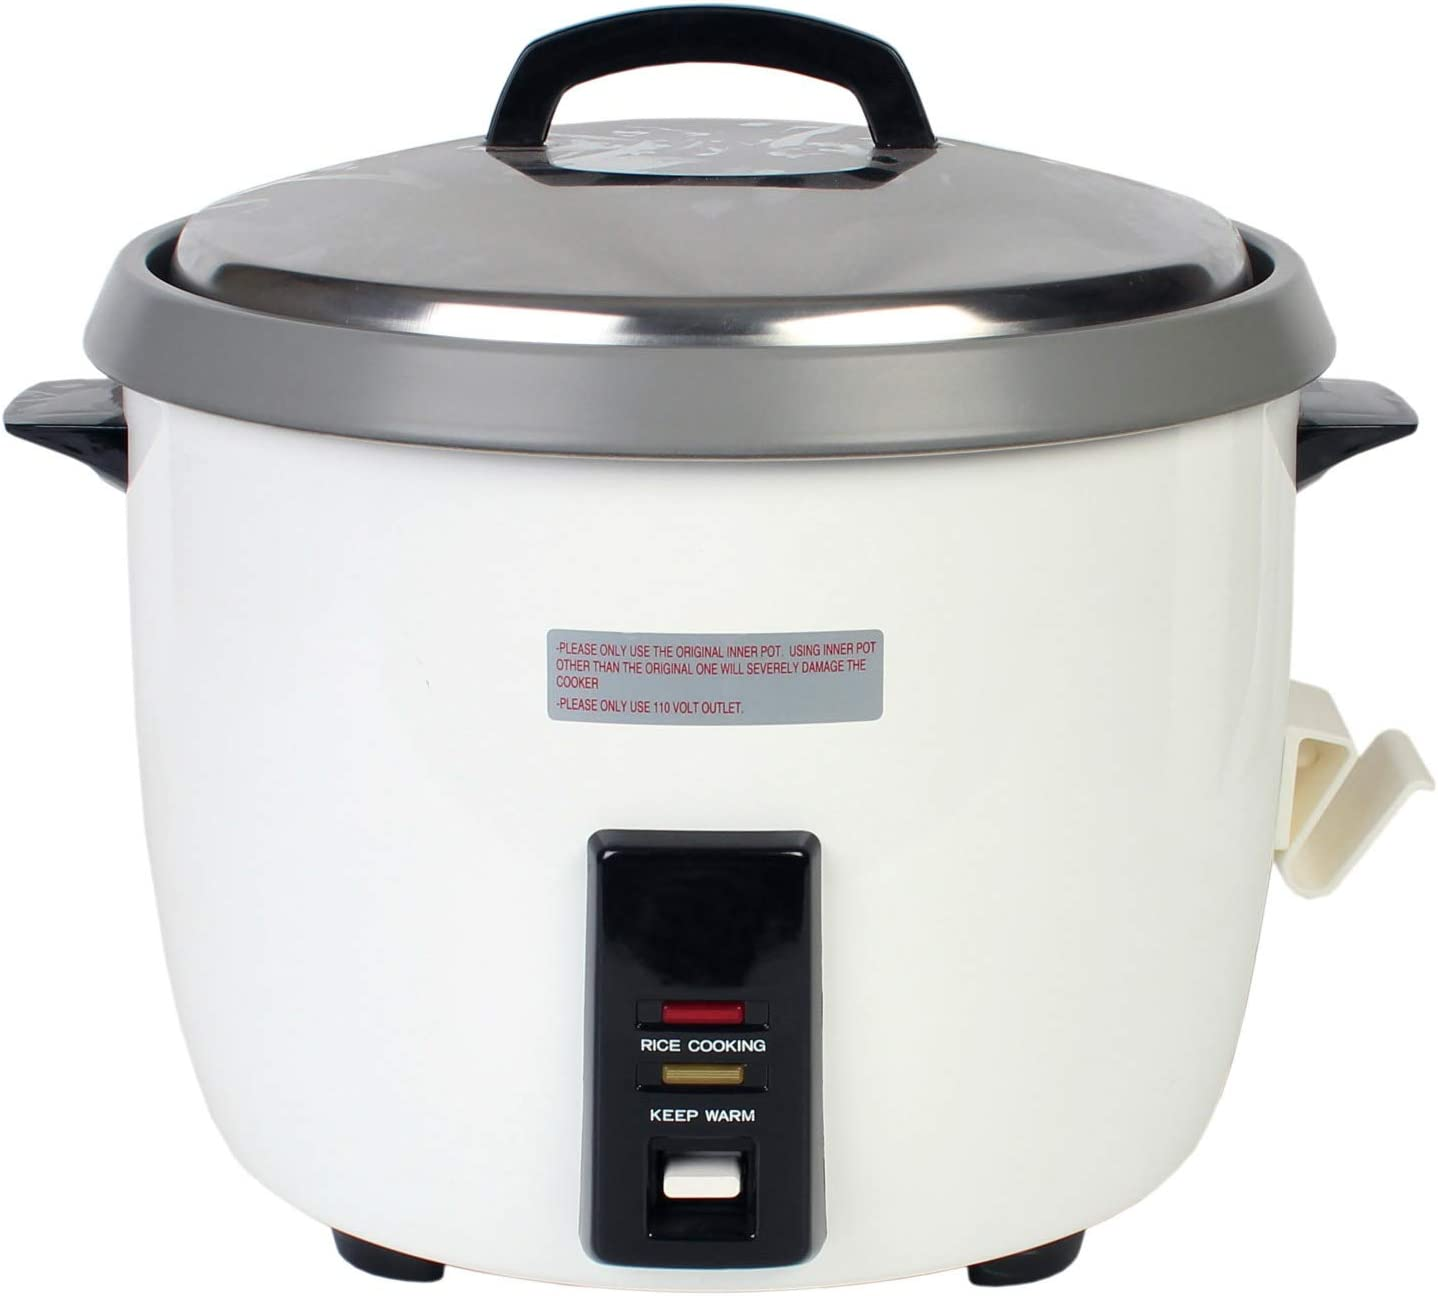 30 CUP RICE COOKER/WARMER-NONSTICK